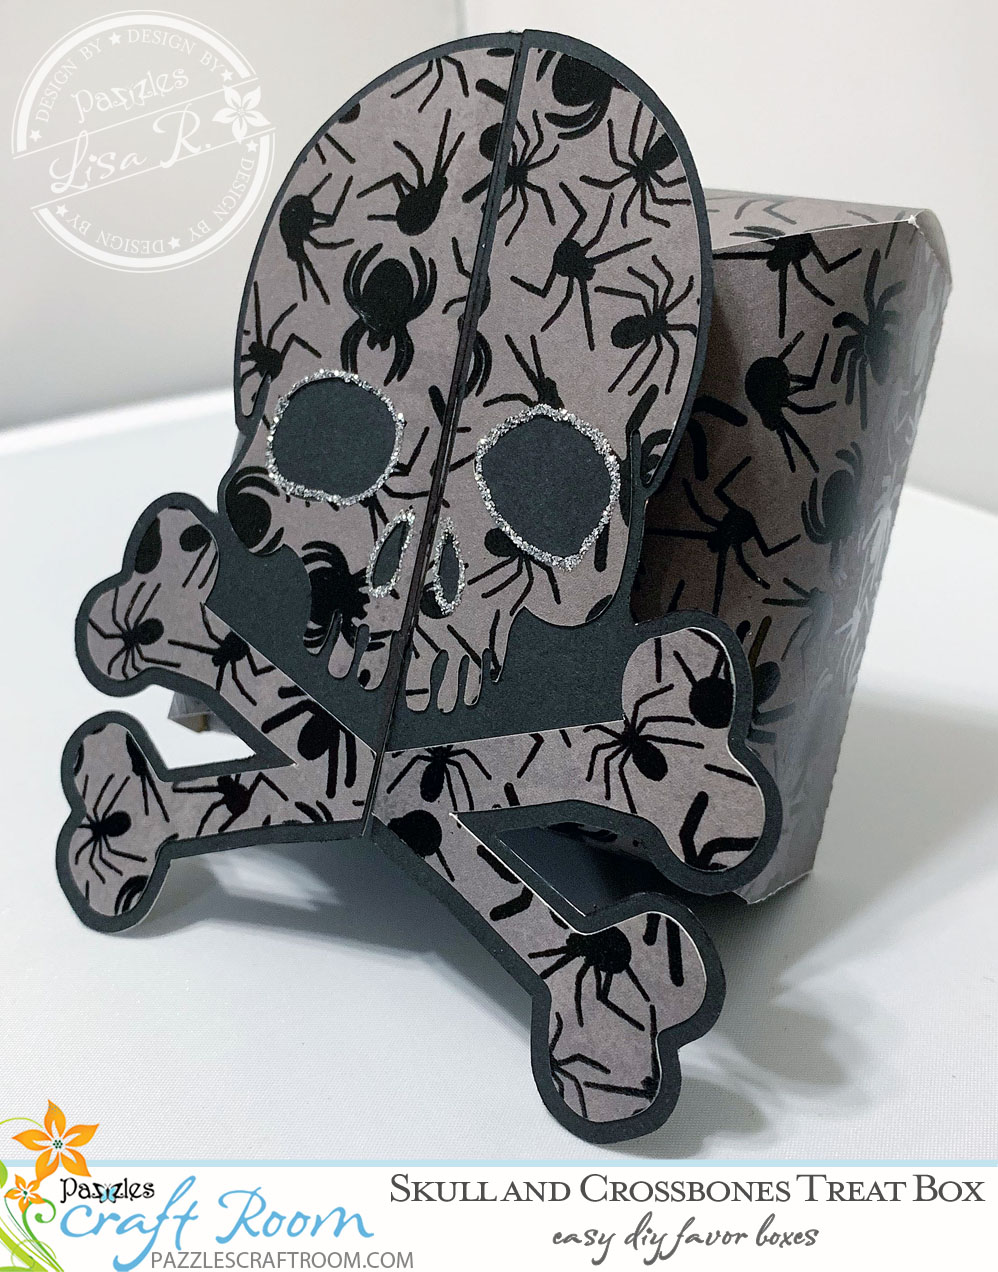 Pazzles Halloween DIY Skull and Crossbones Box or Favor by Lisa Reyna